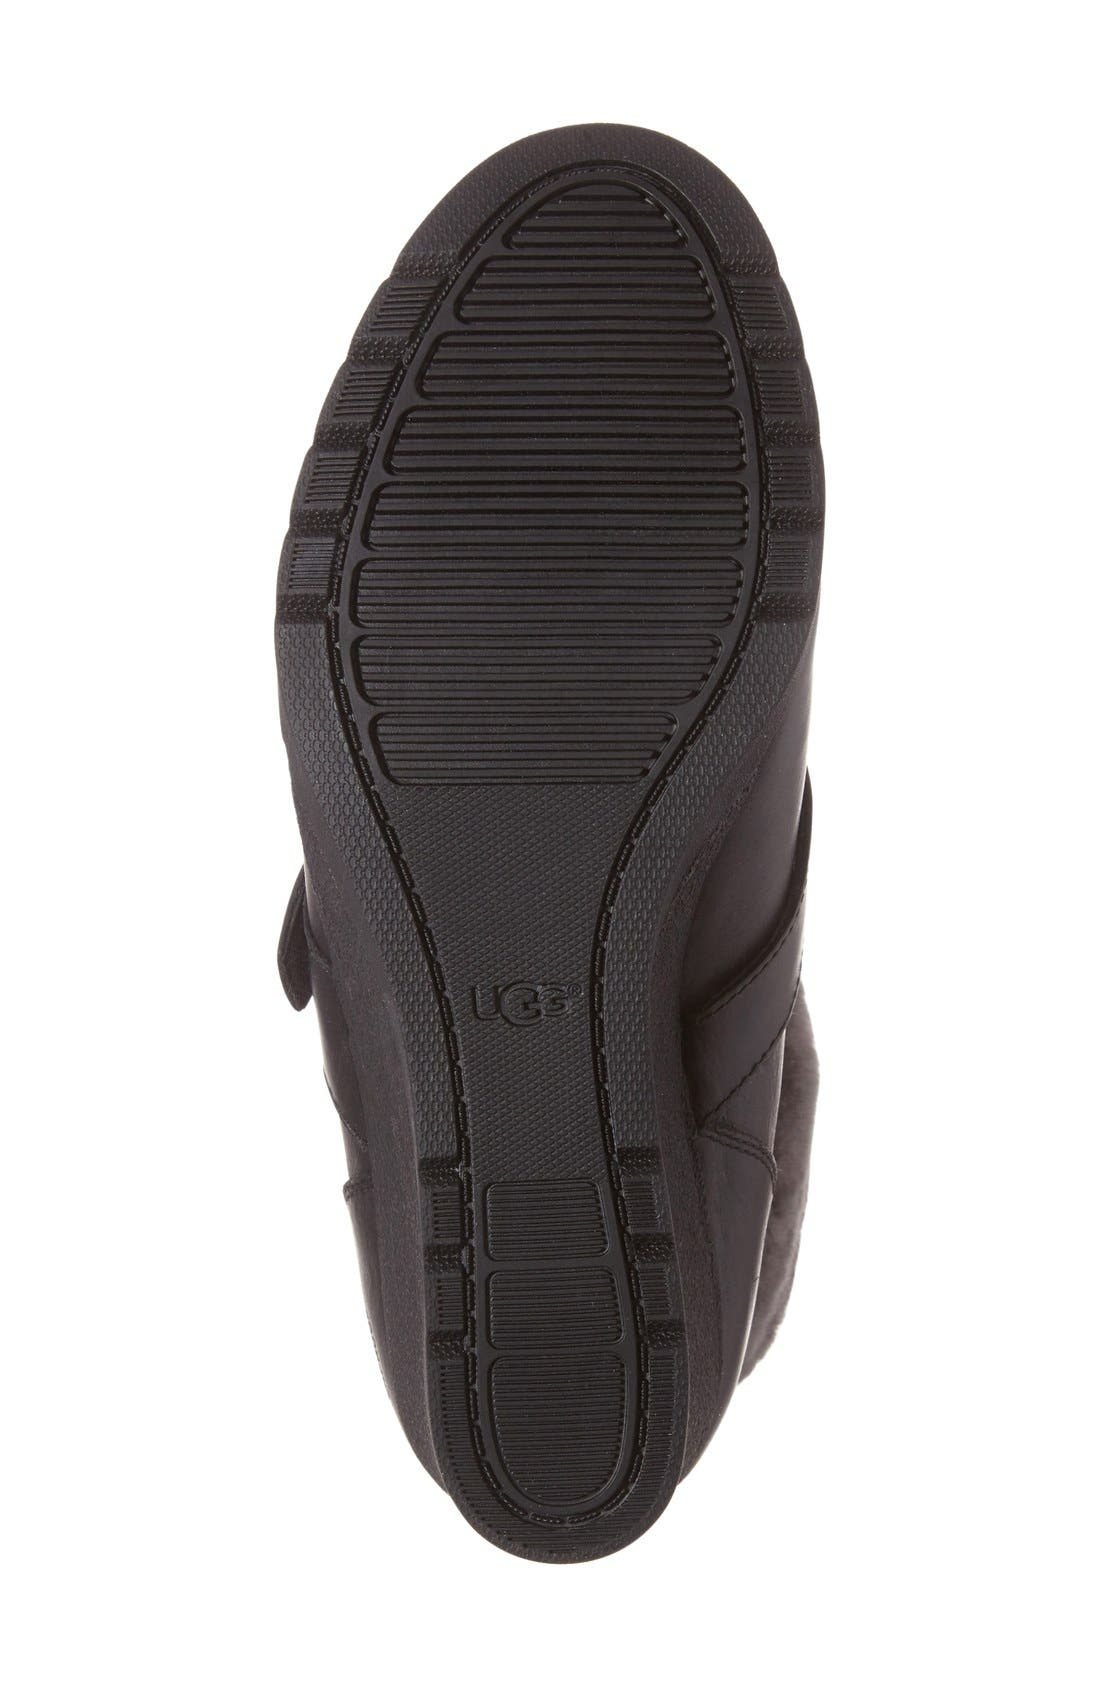 Janney Waterproof Thinsulate<sup>®</sup> Wedge Bootie,                             Alternate thumbnail 4, color,                             001